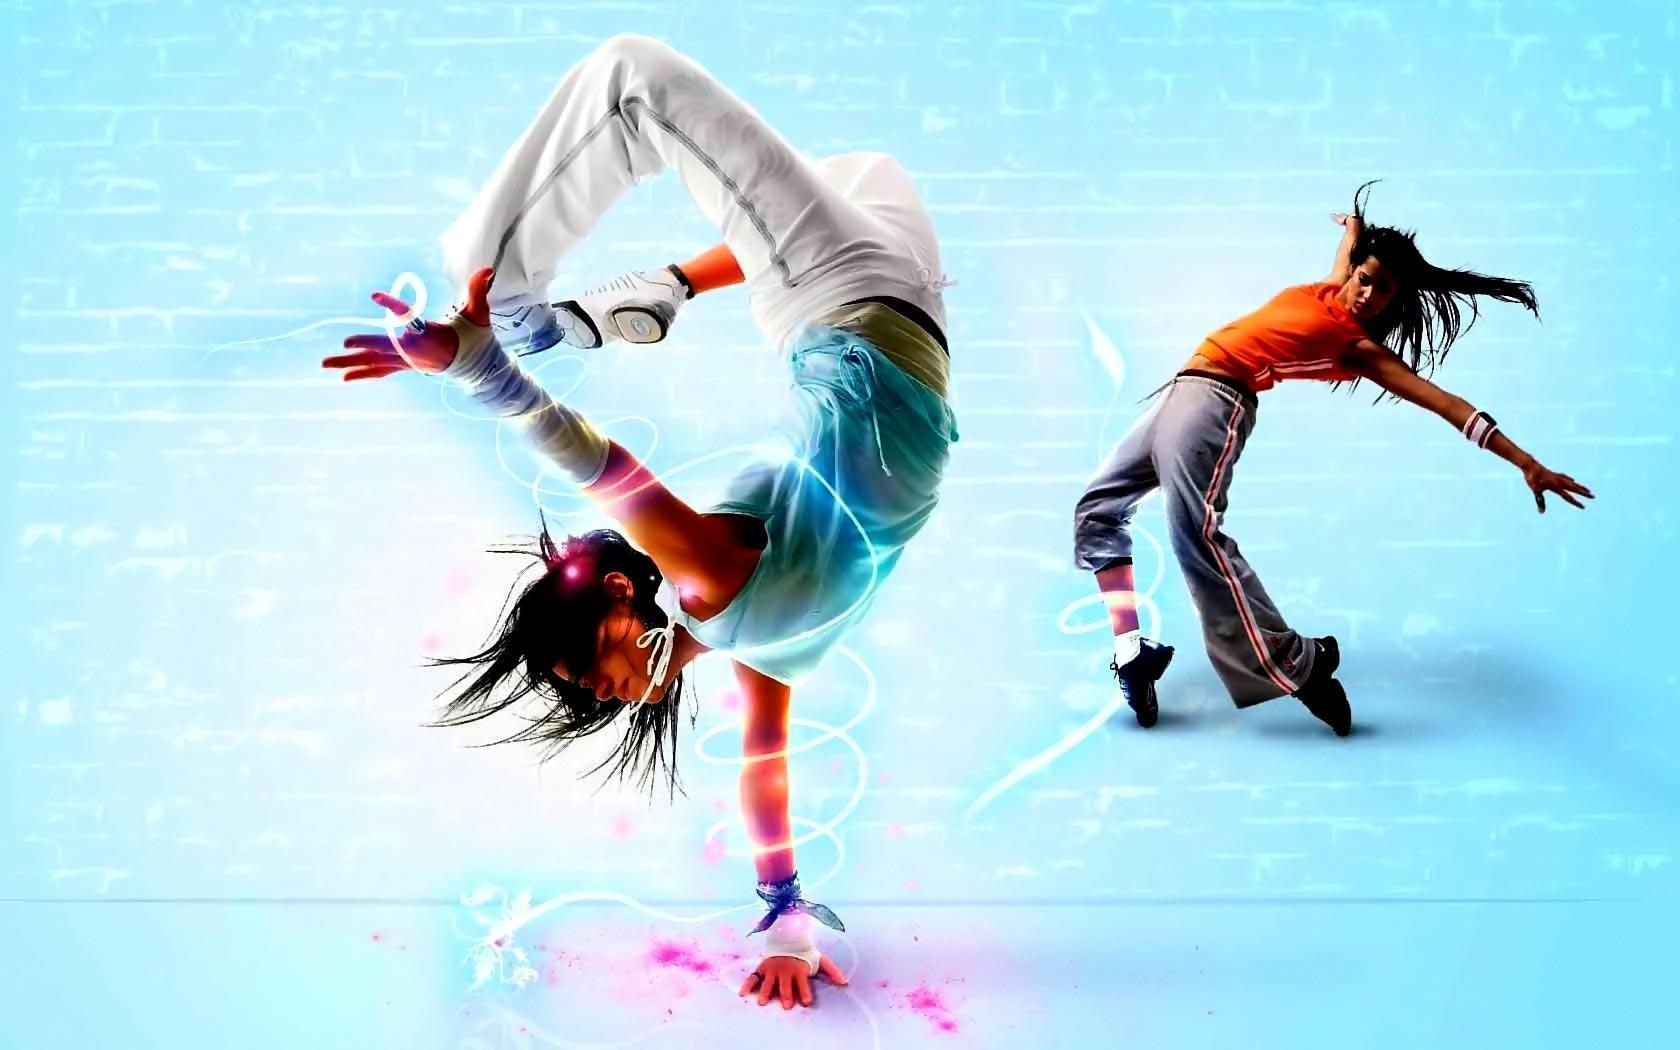 Music Dance Wallpapers Hd Widescreen 11 HD Wallpapers